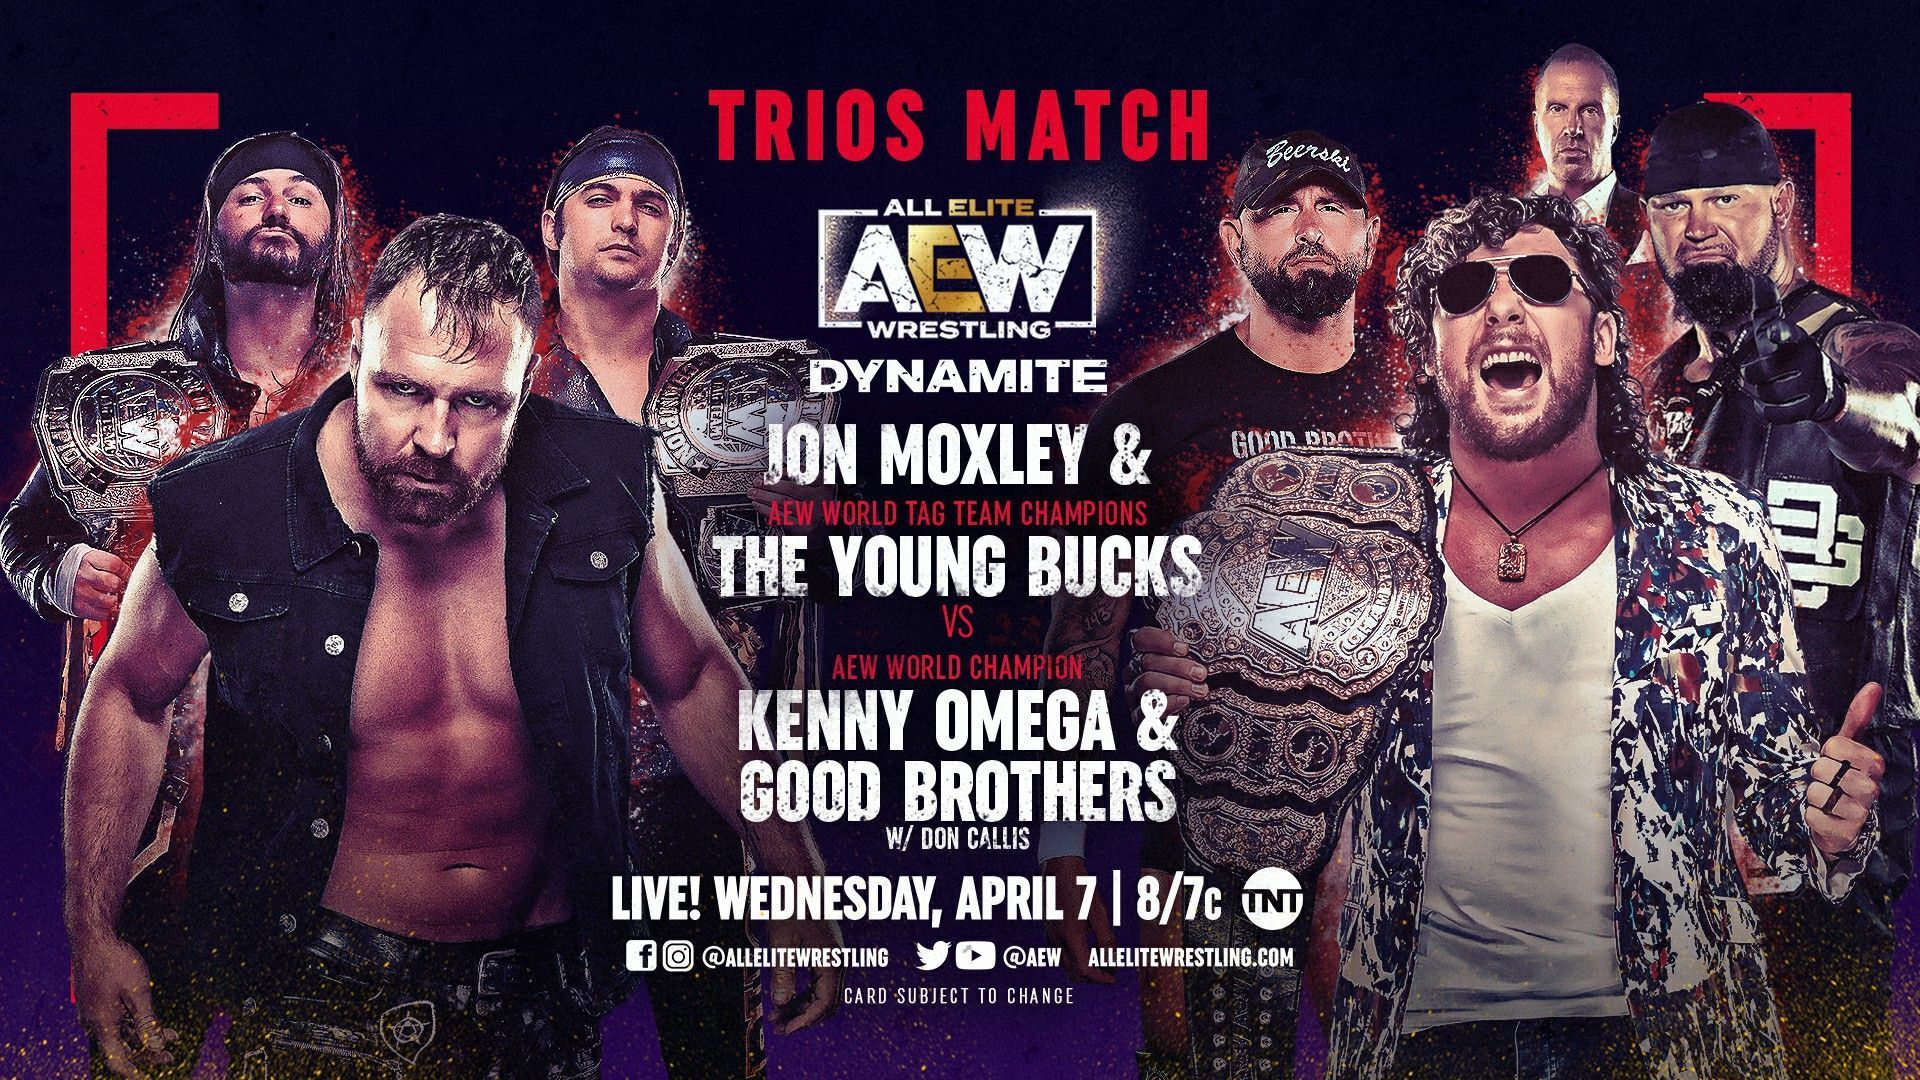 AEW Dynamite IGNITE for 4/7/21 https://pbs.twimg.com/media/EyS5YXJVgA0ohhV?format=jpg&name=large